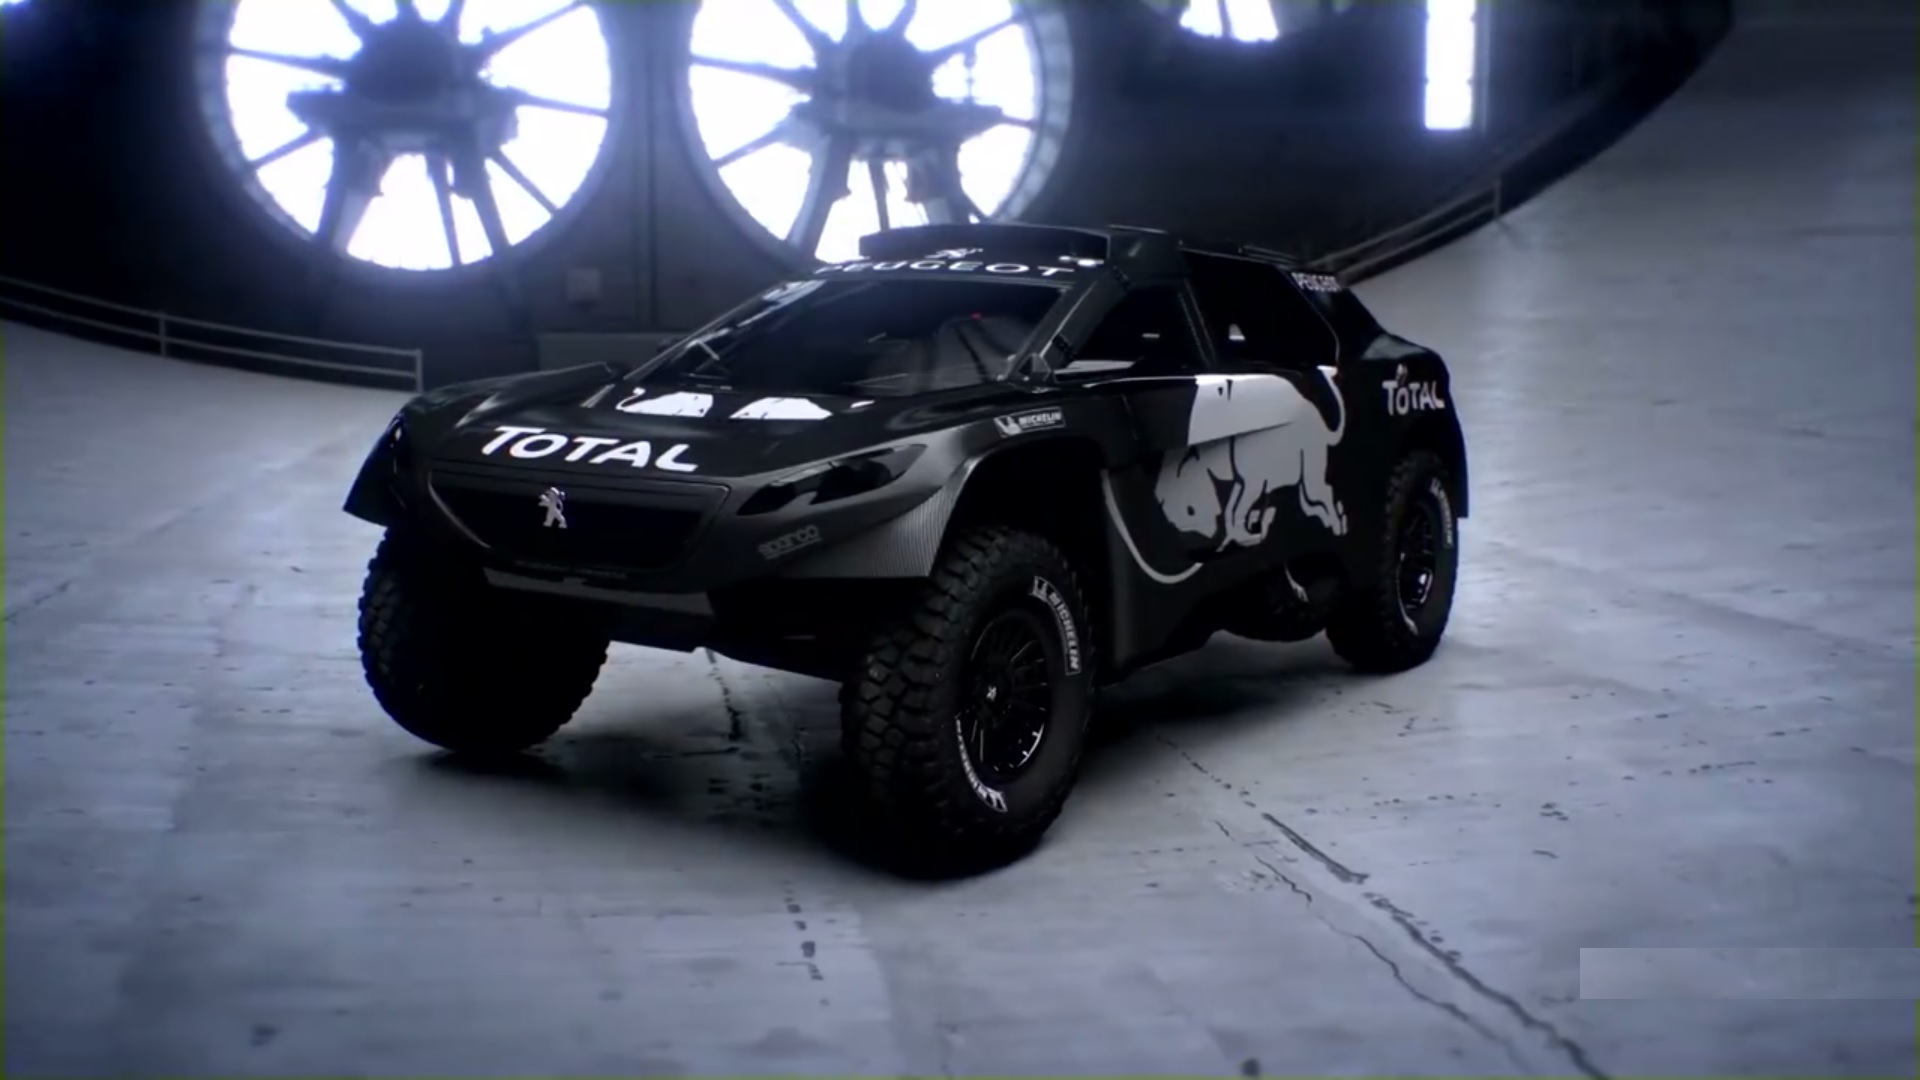 Check out Peugeot's off-road monster